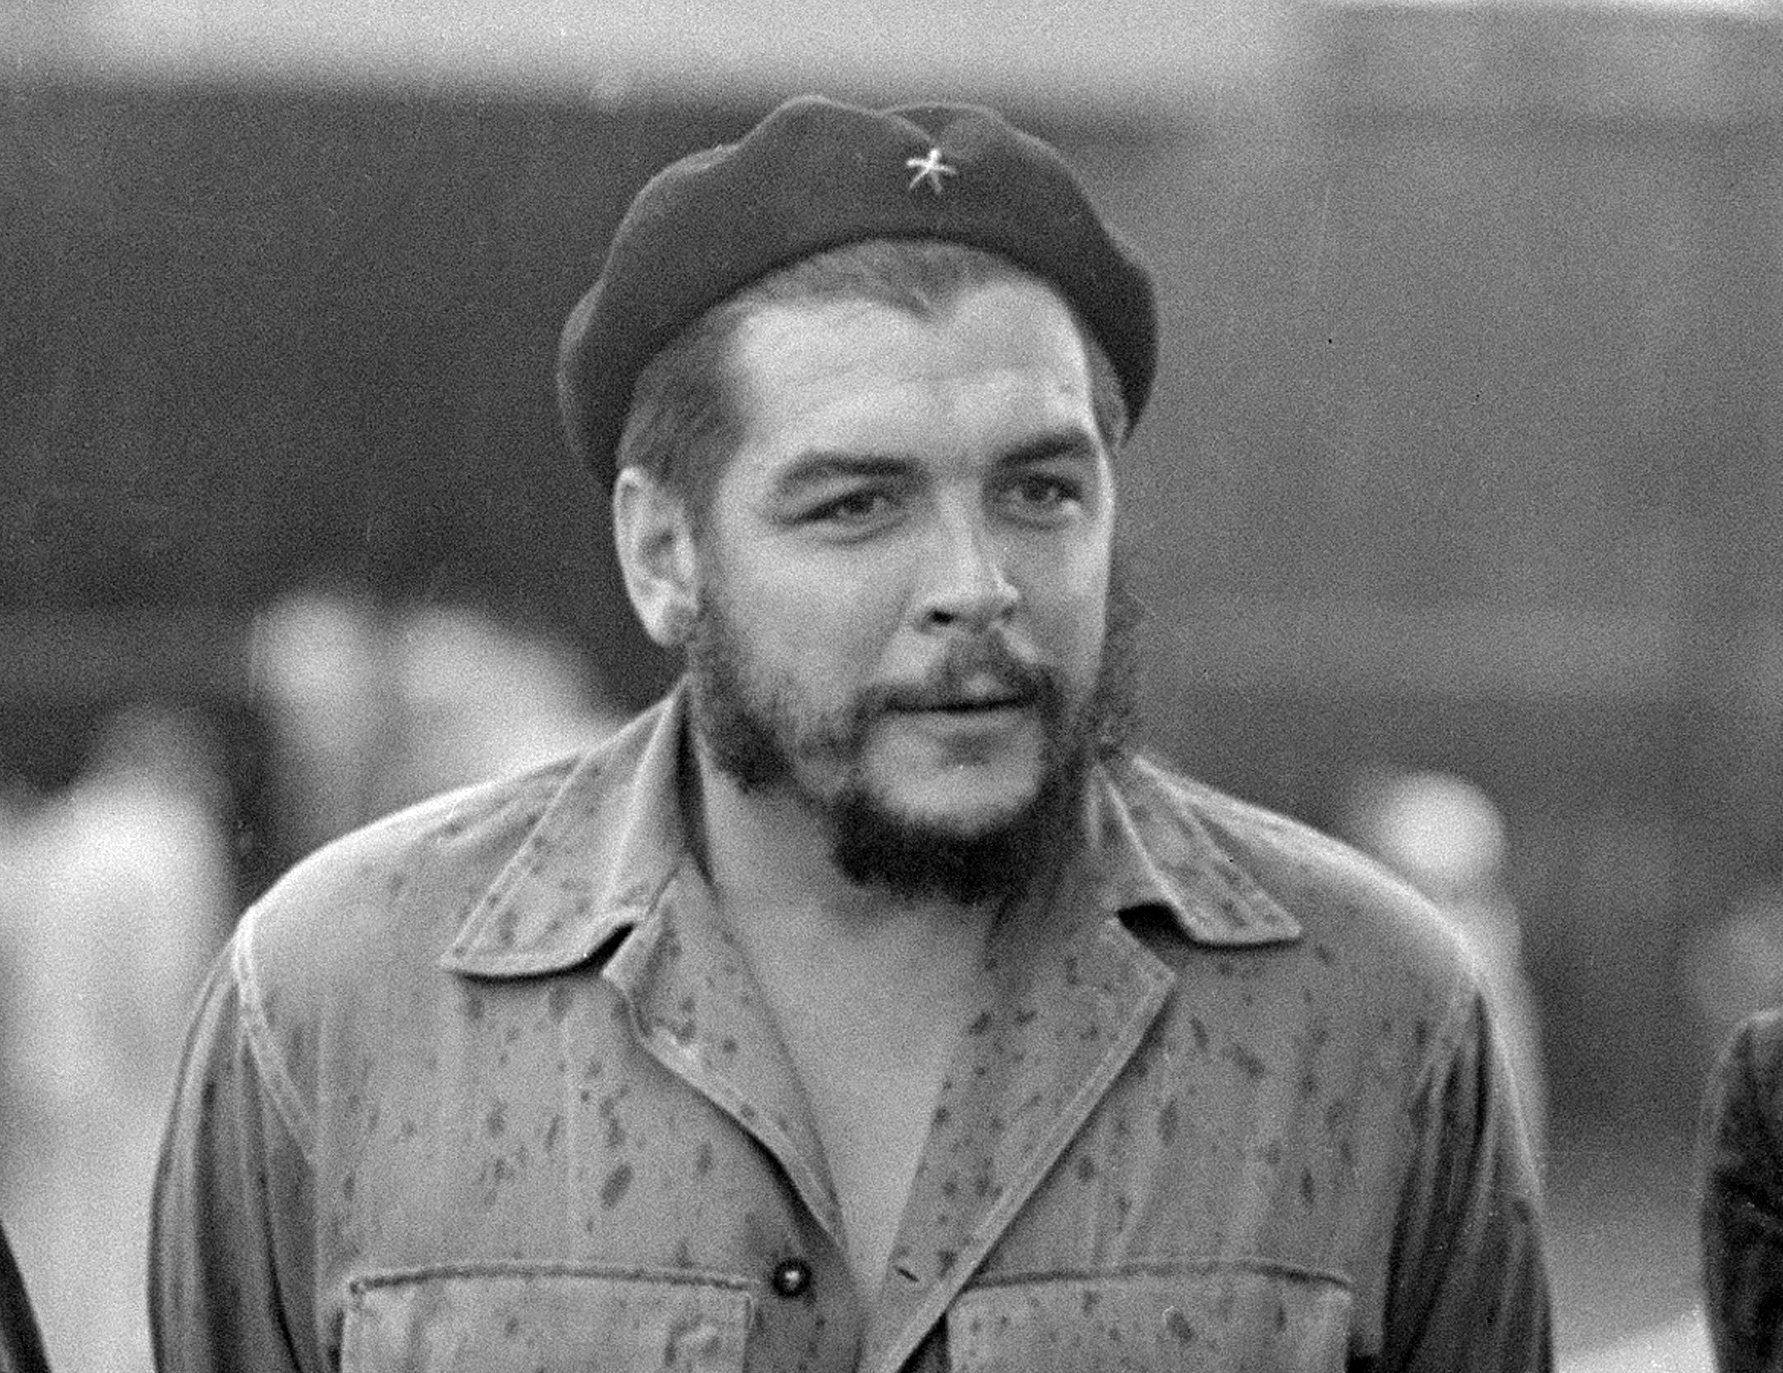 Book of letters by Che Guevara coming out in English in 2021